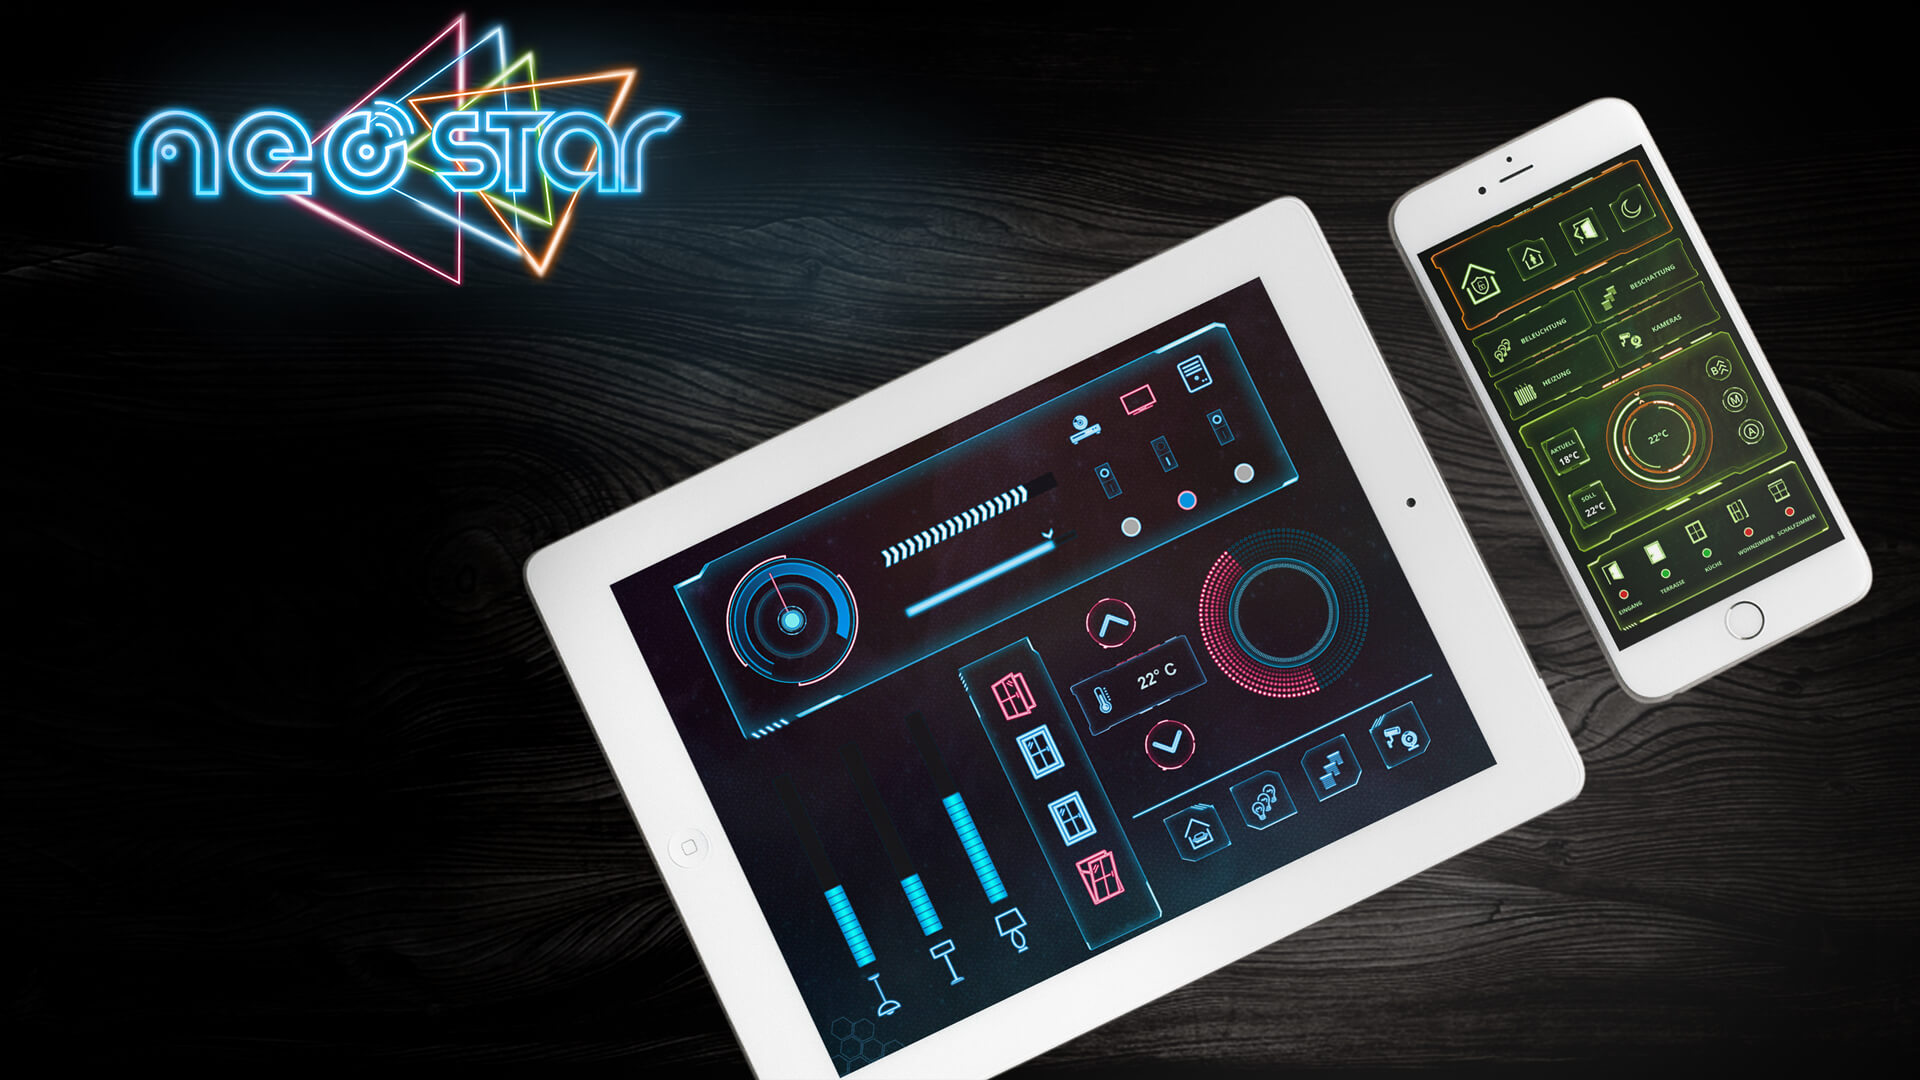 NEOstar-ipad-iphone-iconsets_smart-home_mediola_aio-creator-neo_1920x1080